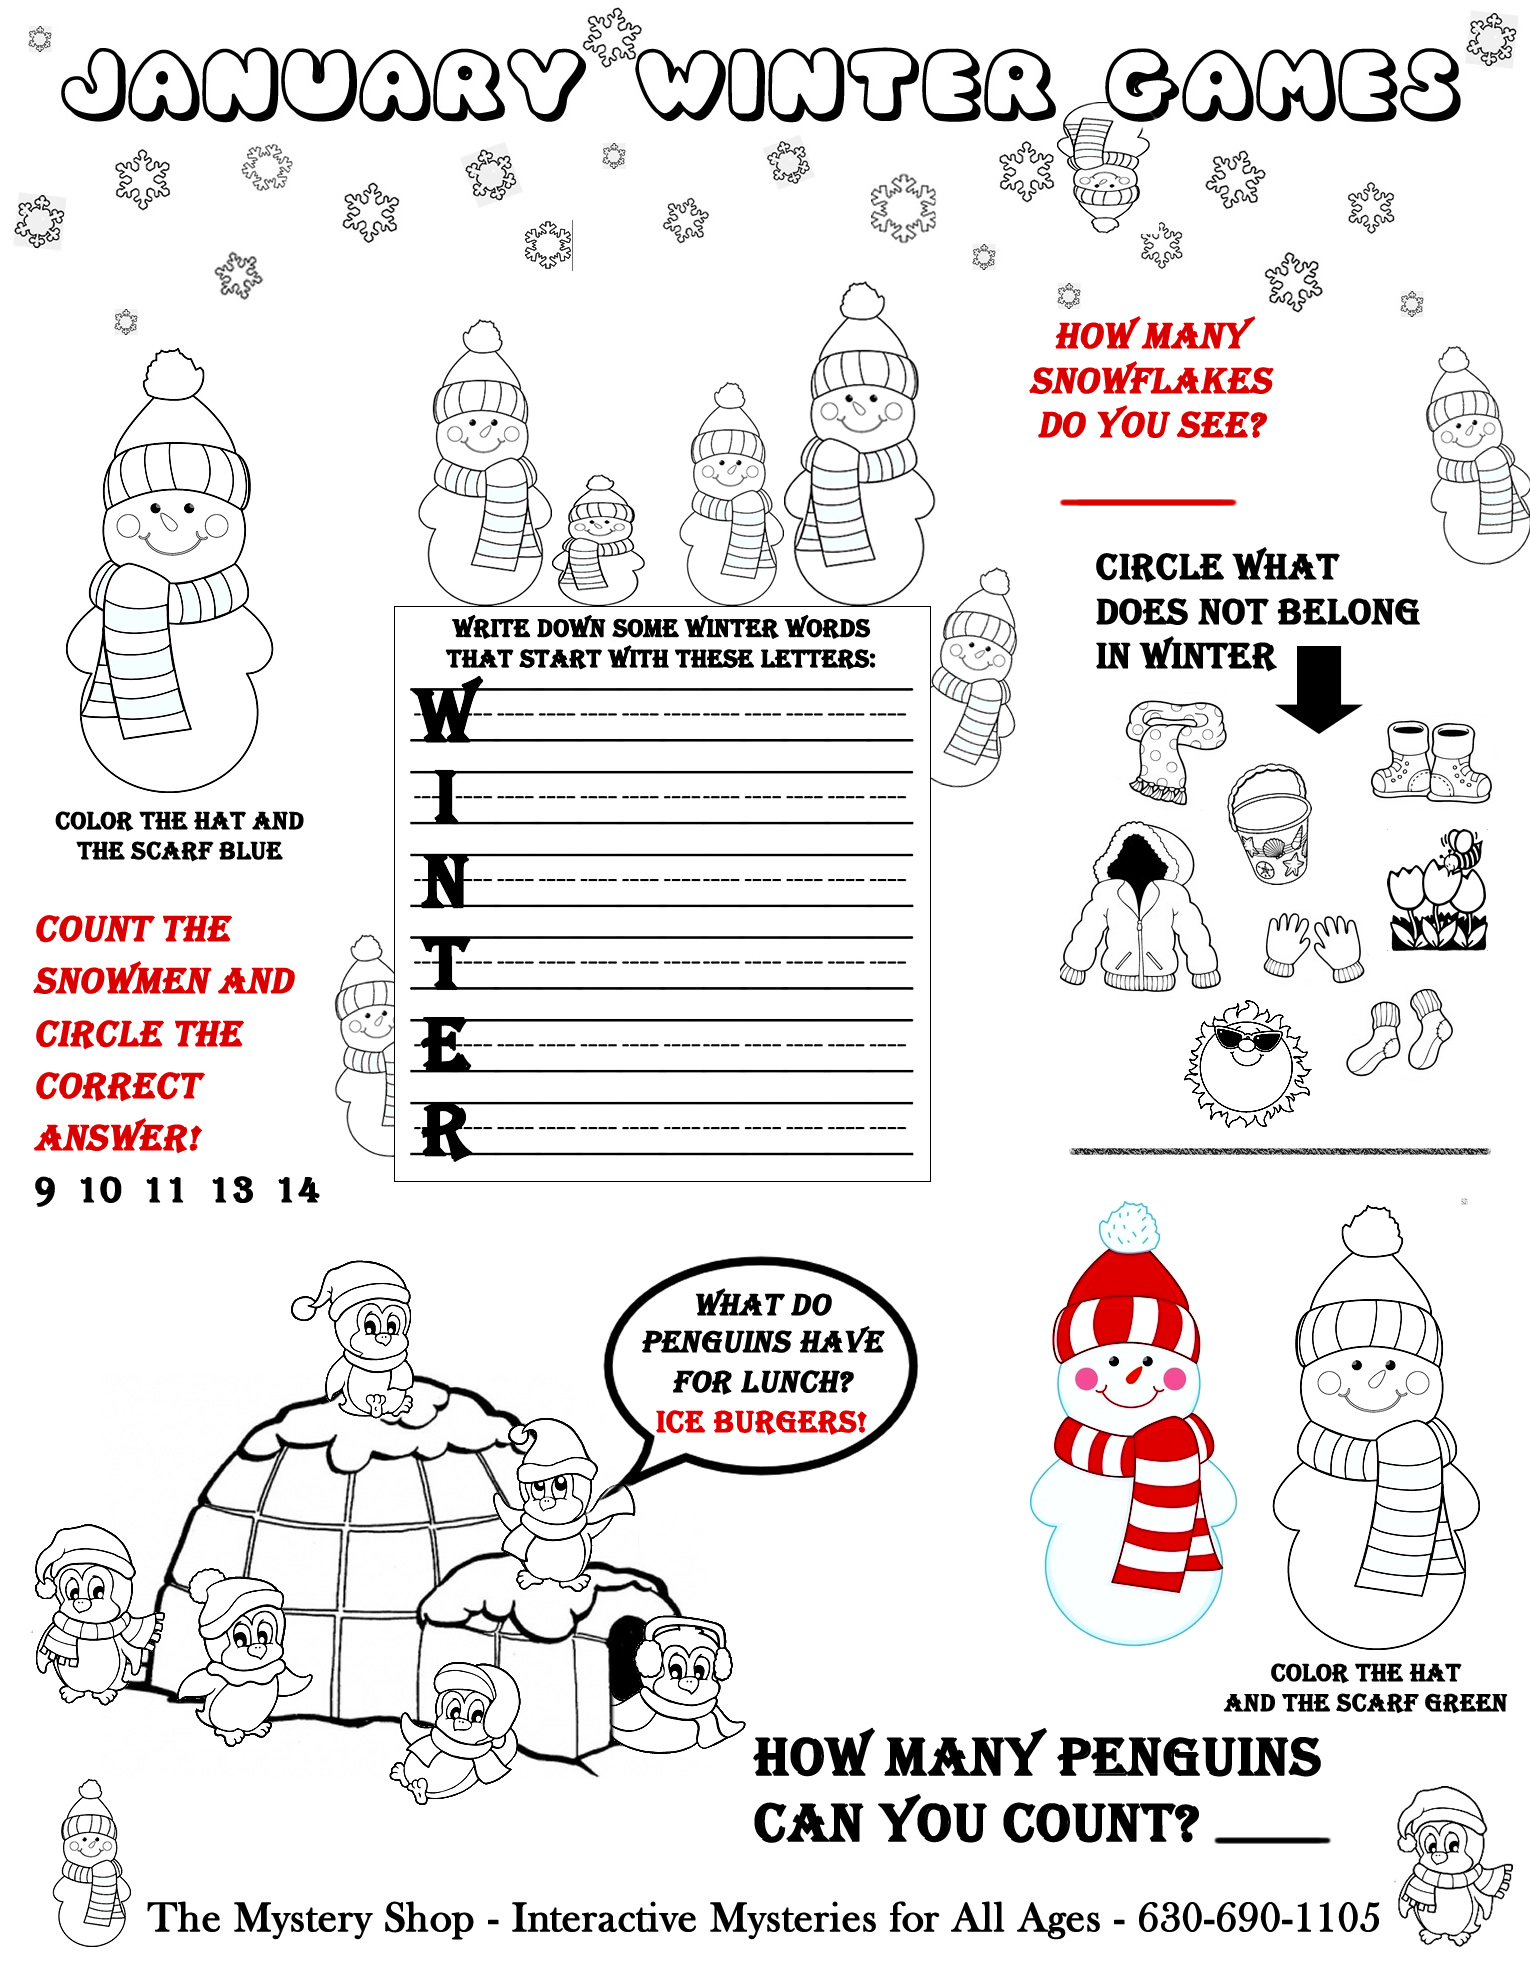 More Mystery Pages for Kids for Coloring with Riddles